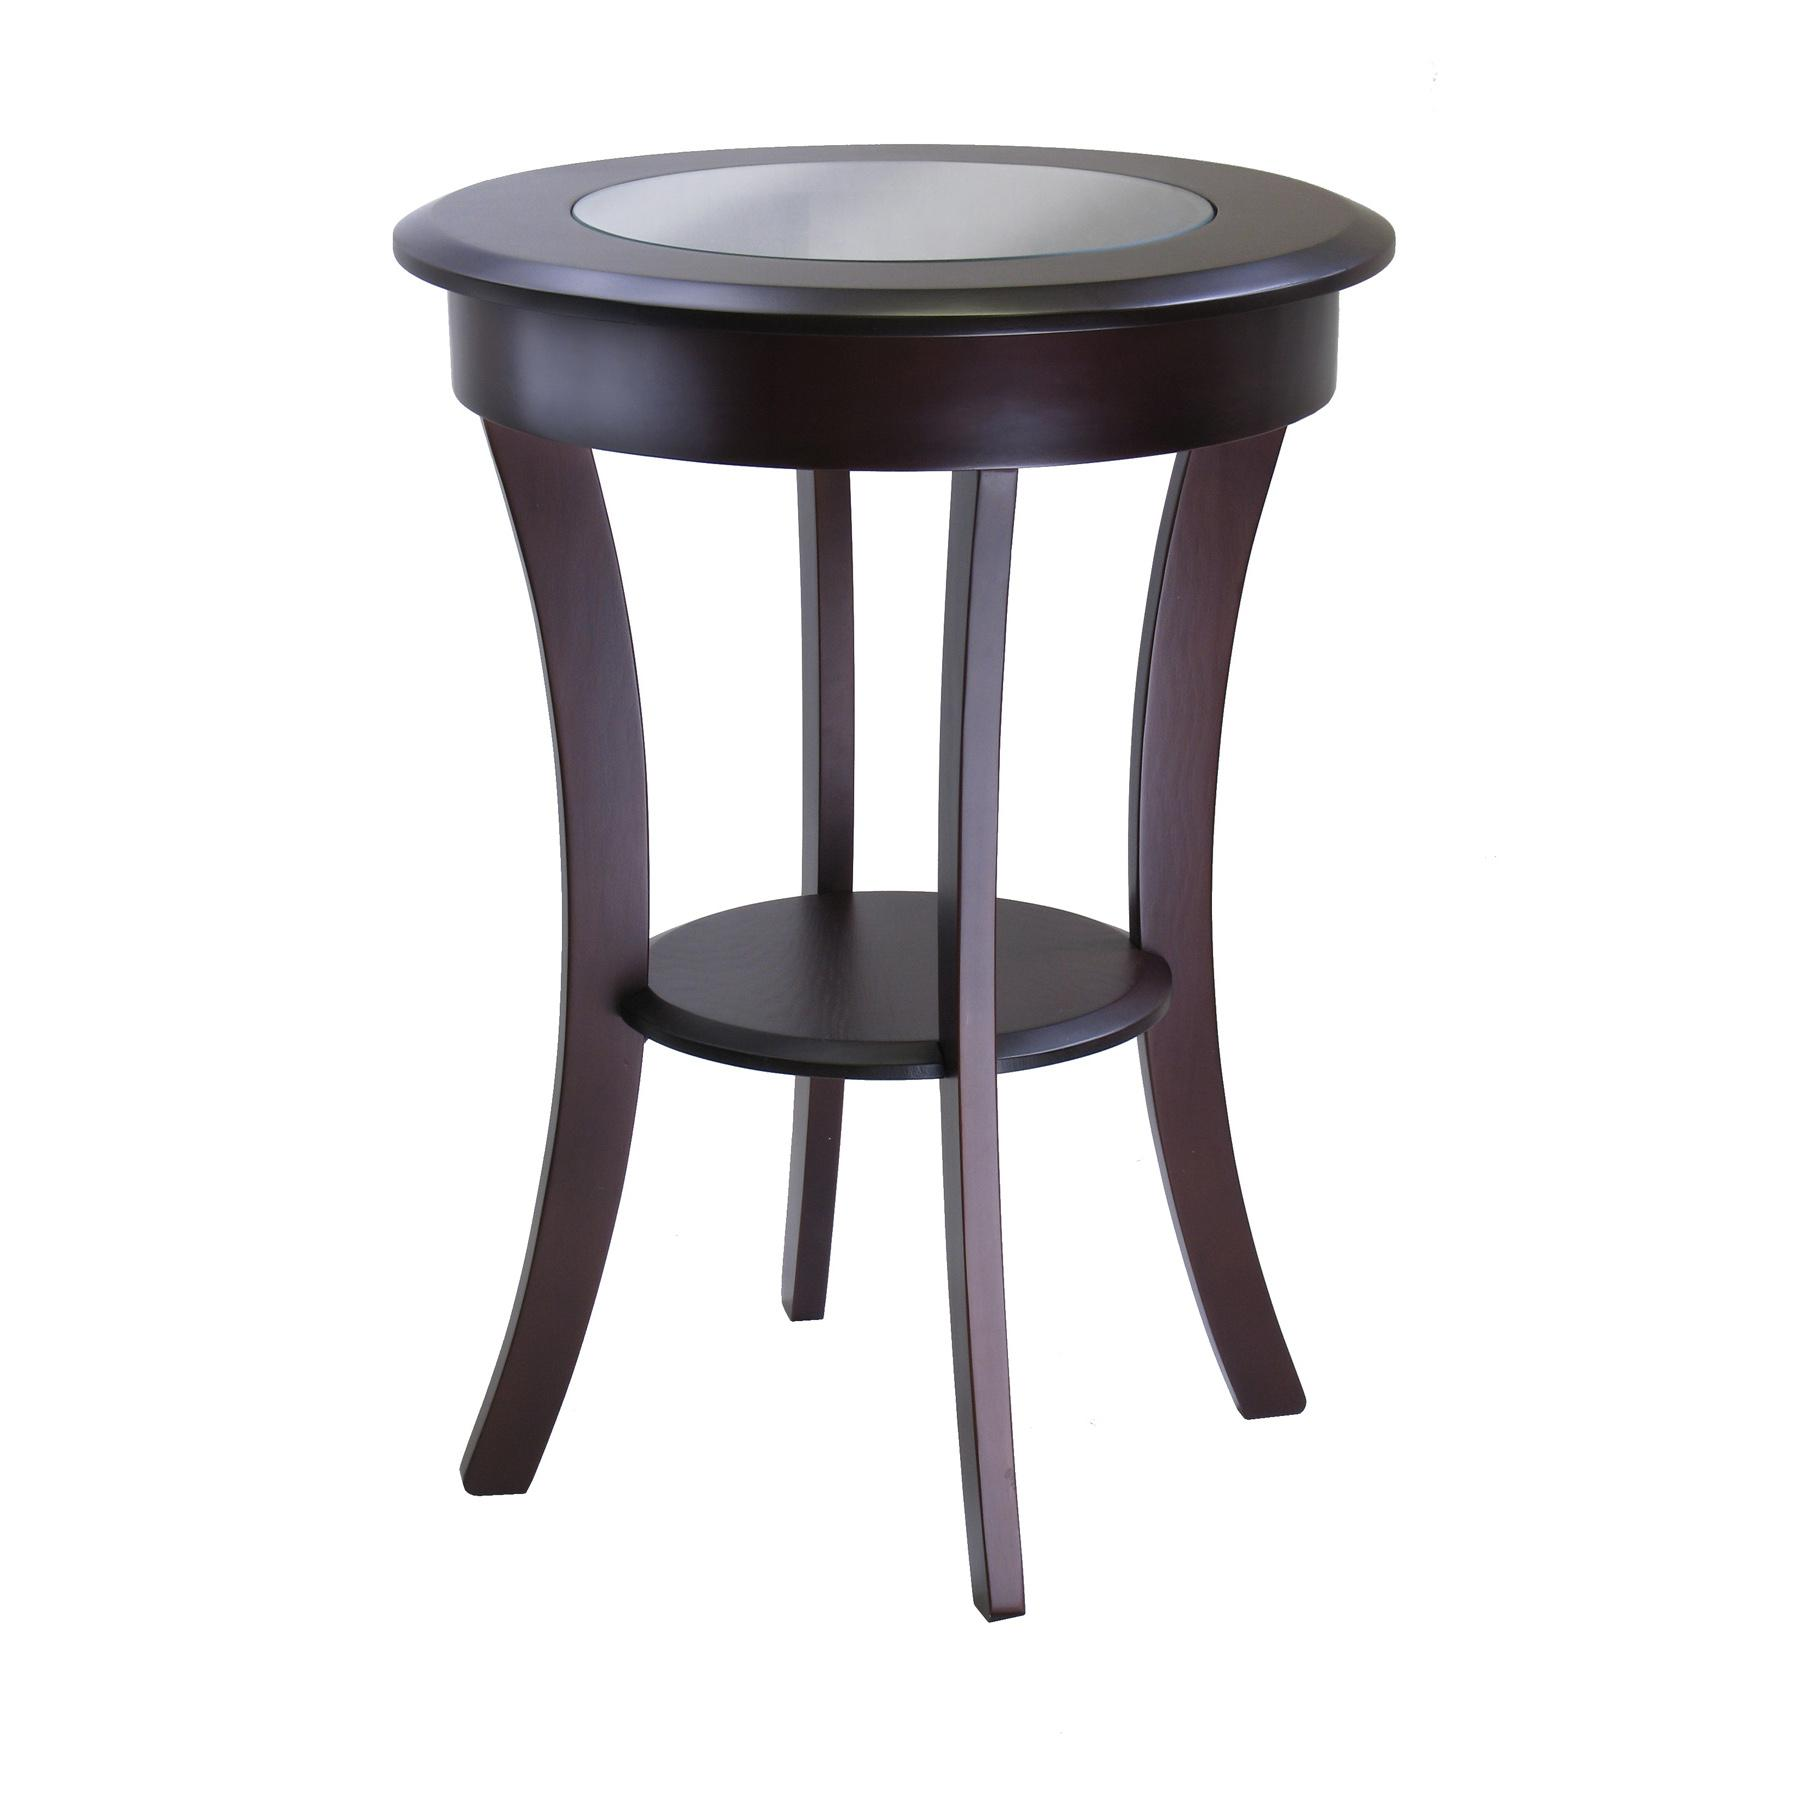 Winsome wood cassie accent table with glass for Occasional tables